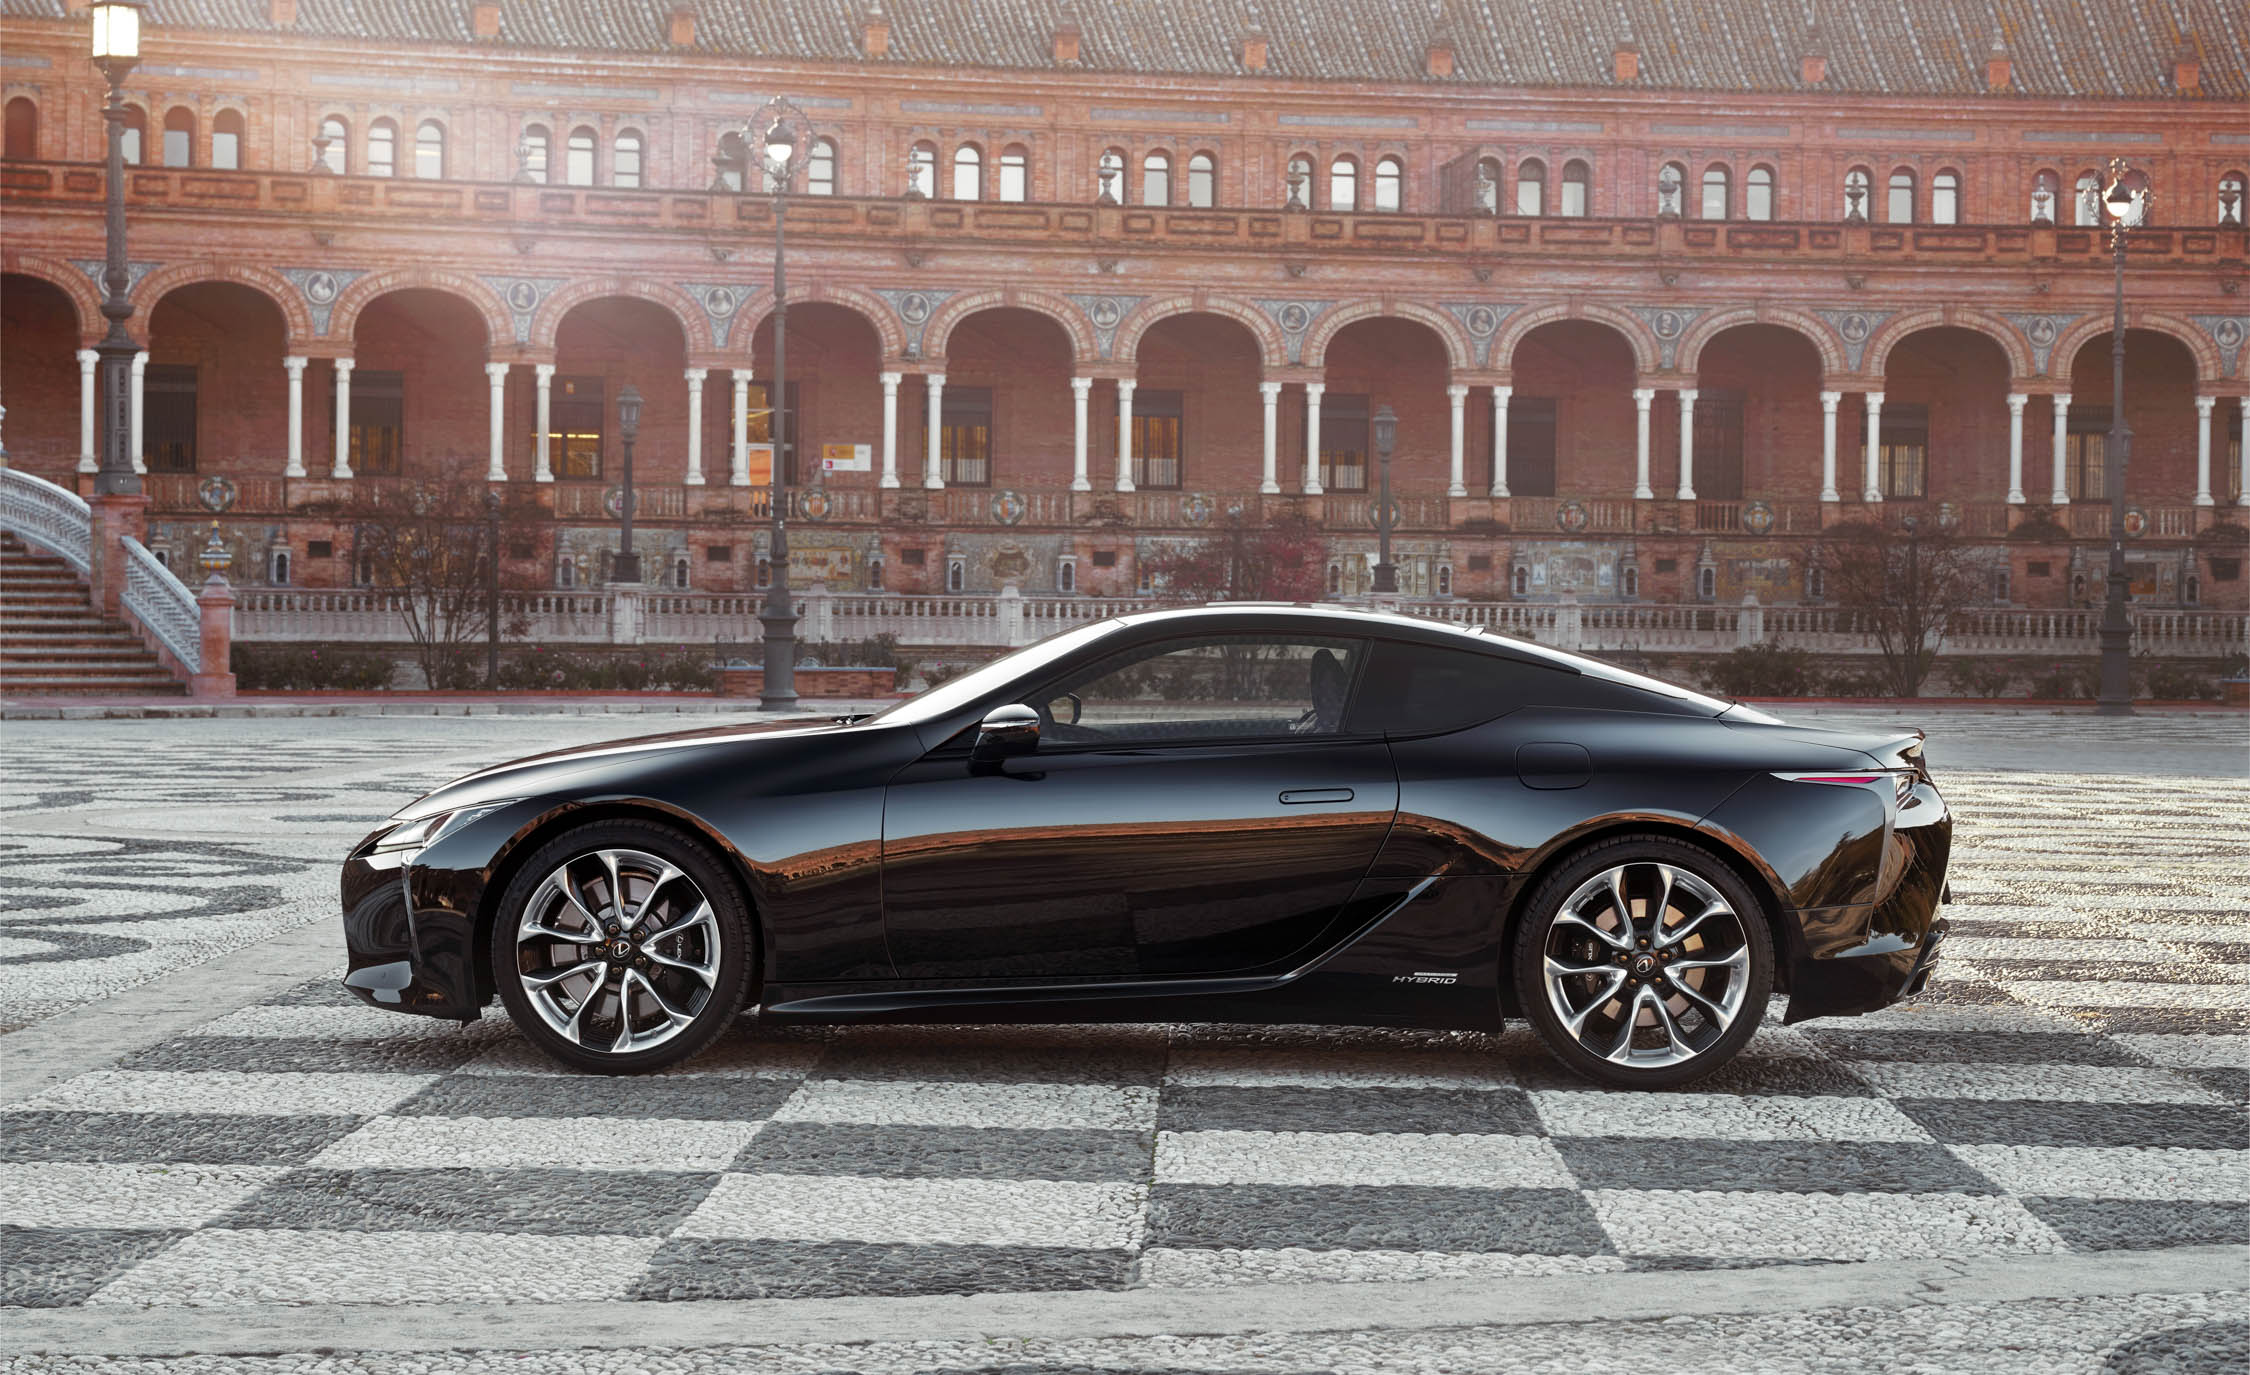 2018 Lexus Lc 500h Black Exterior Side (Photo 45 of 84)